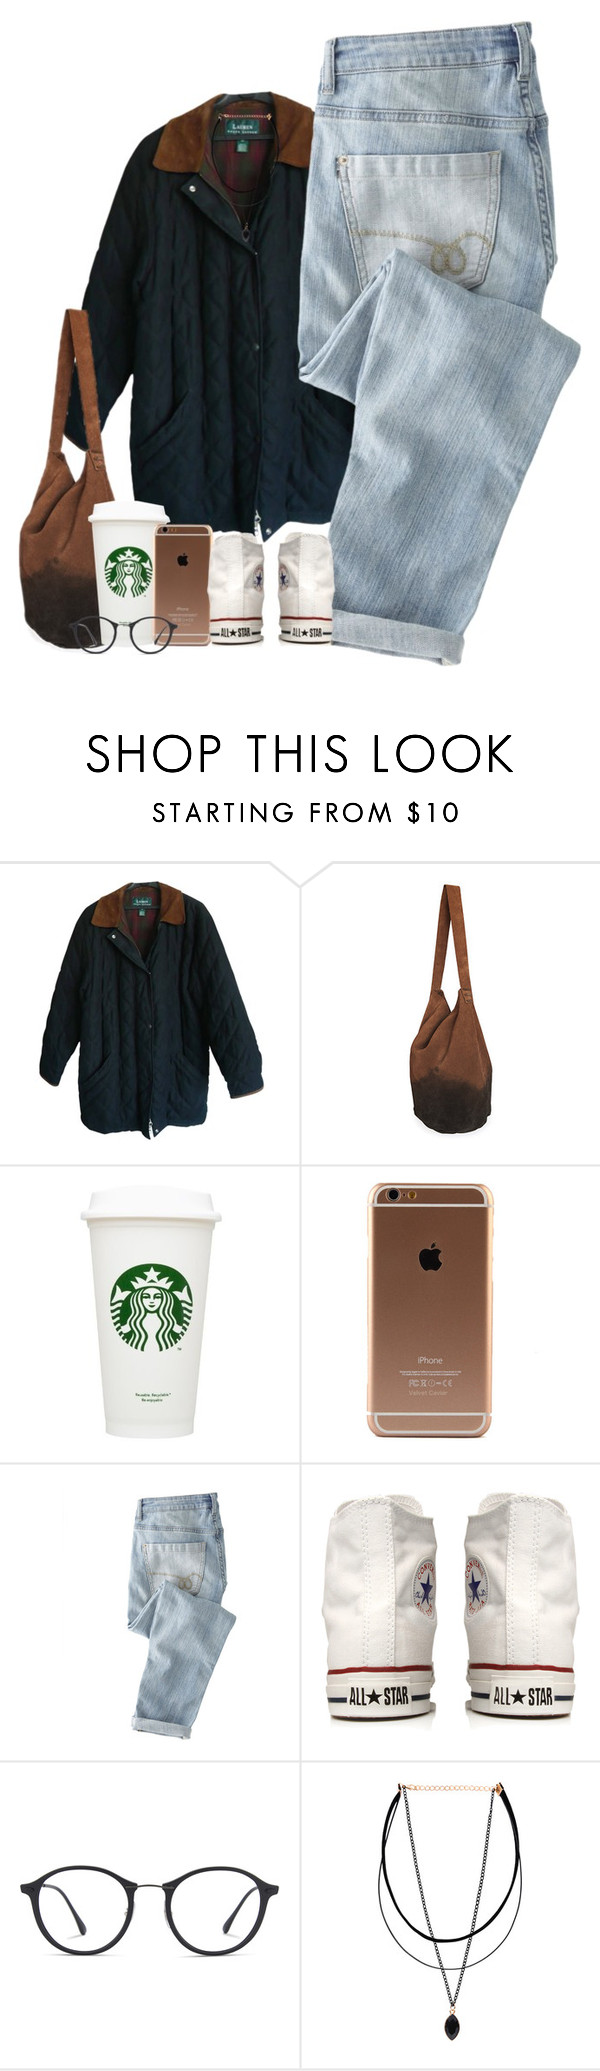 """🐌"" by mxnvt ❤ liked on Polyvore featuring Polo Ralph Lauren, Wrap, Converse and Ray-Ban"